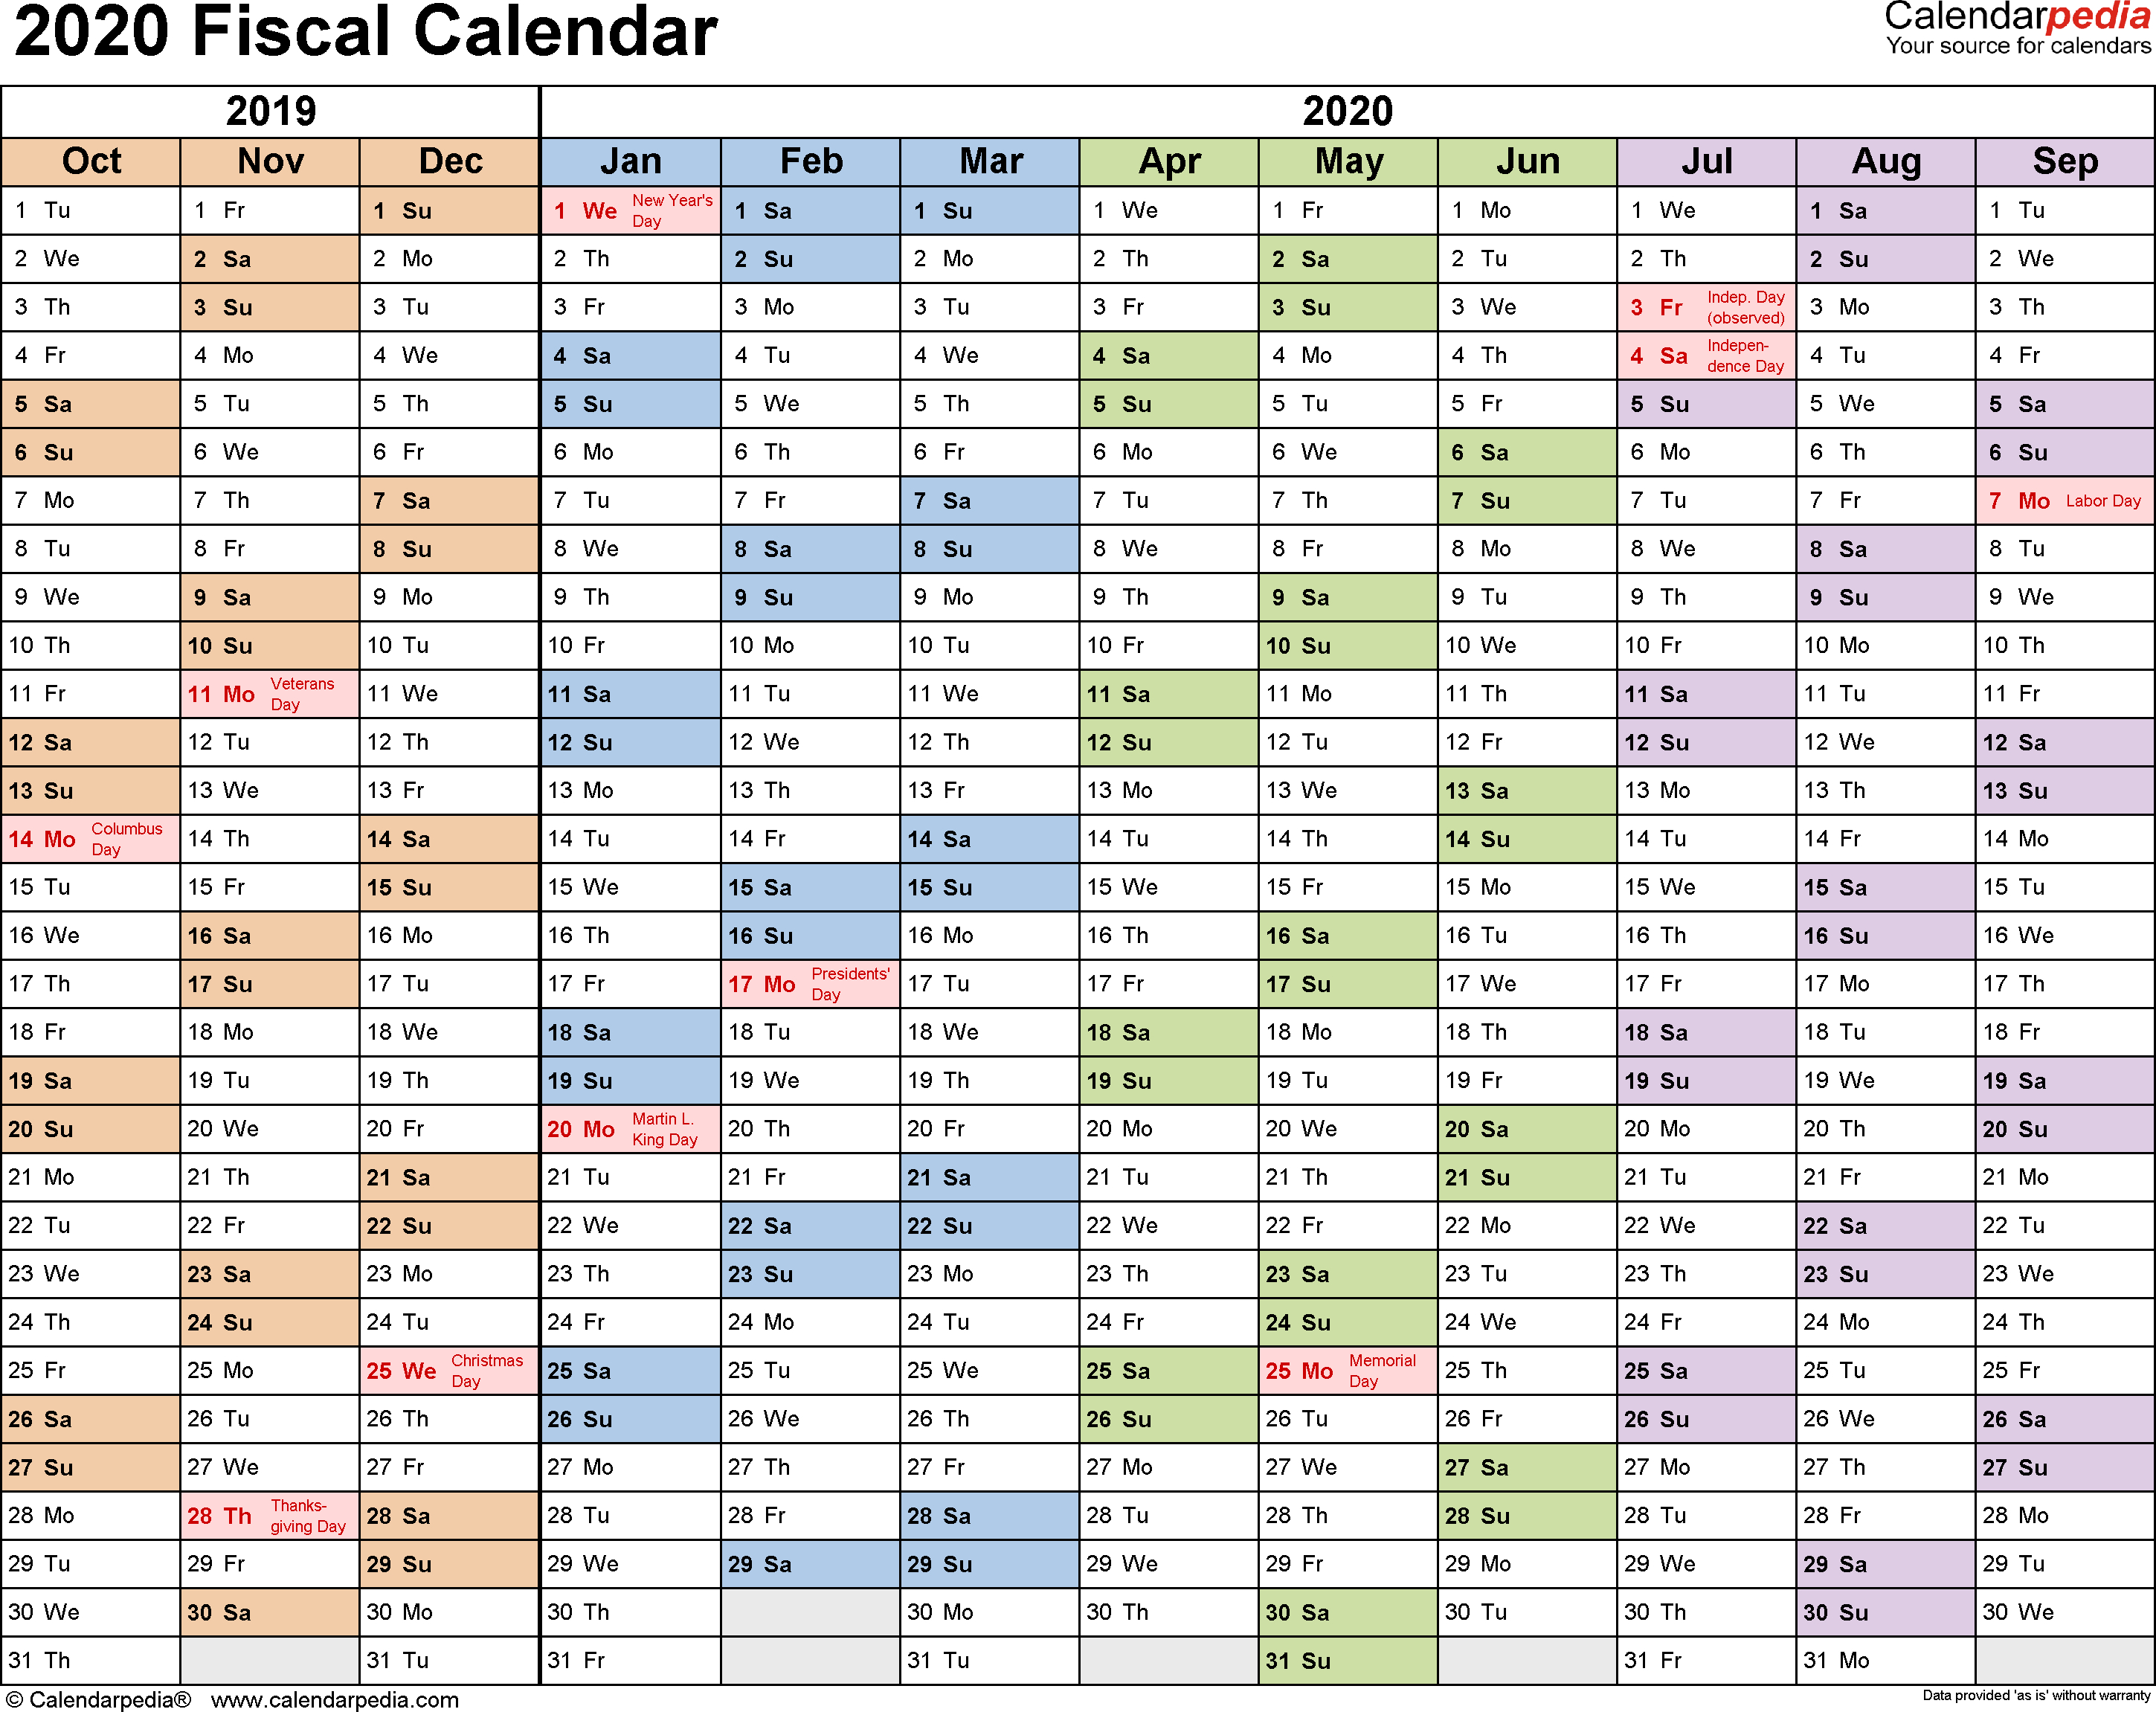 Fiscal Calendars 2020 As Free Printable Excel Templates intended for Excel 2020 Calendar Year Formula